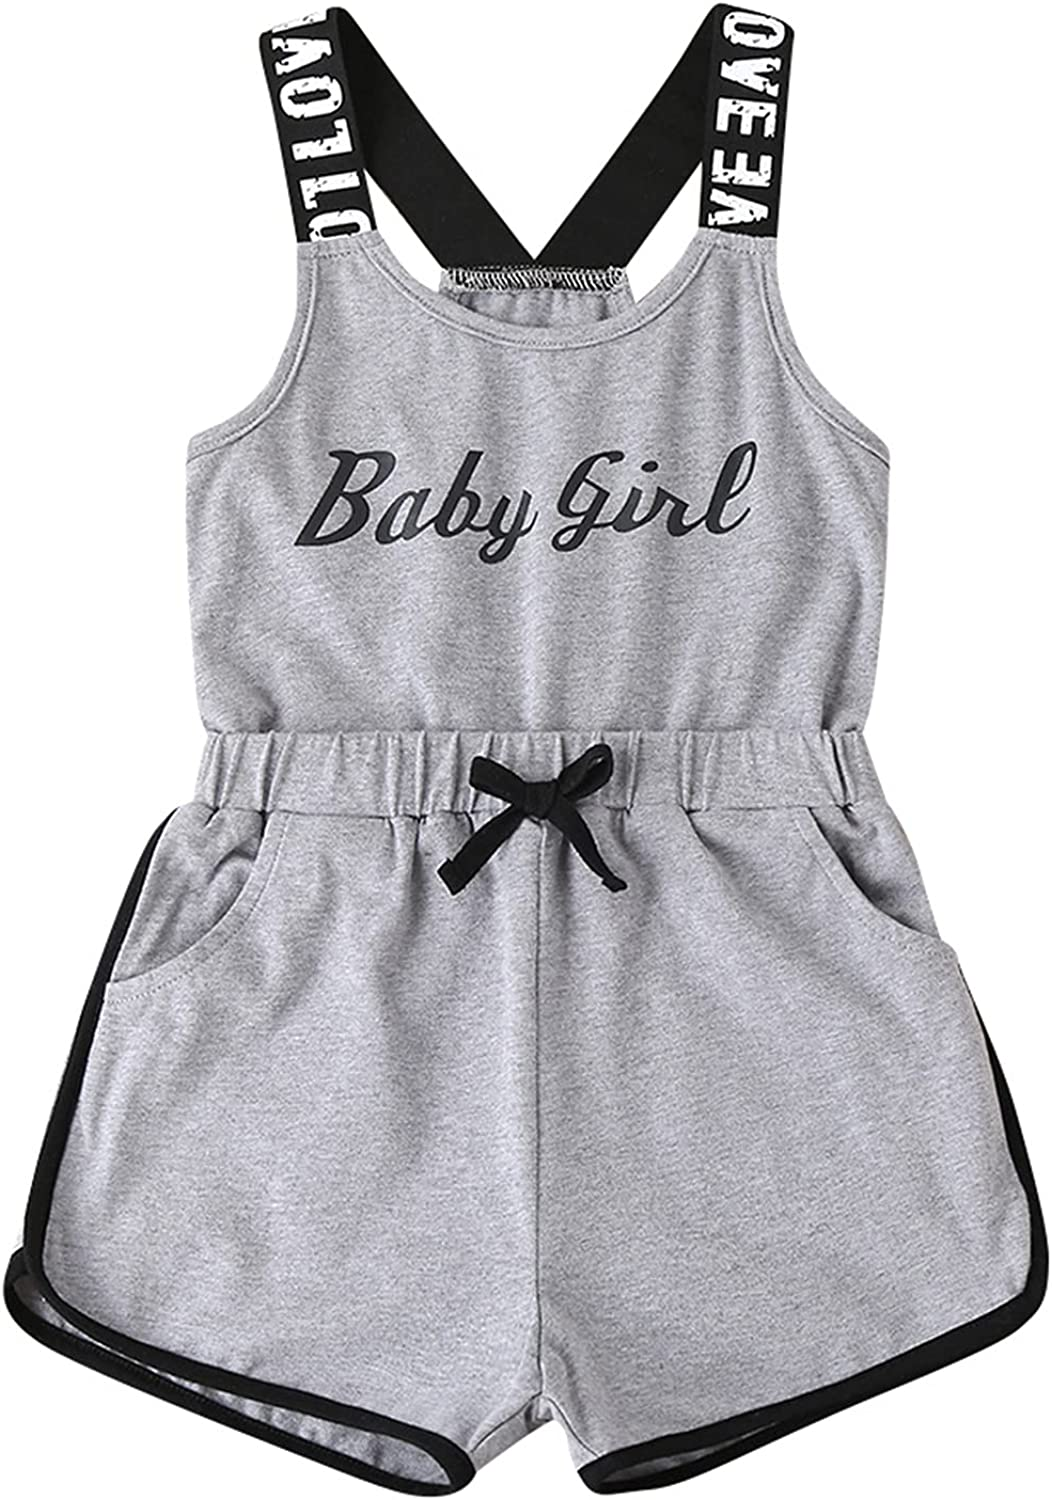 Kaerm Kids Same day shipping Big Girls Summer 2 Suit Some reservation Athletic Cro Pcs Casual Sport